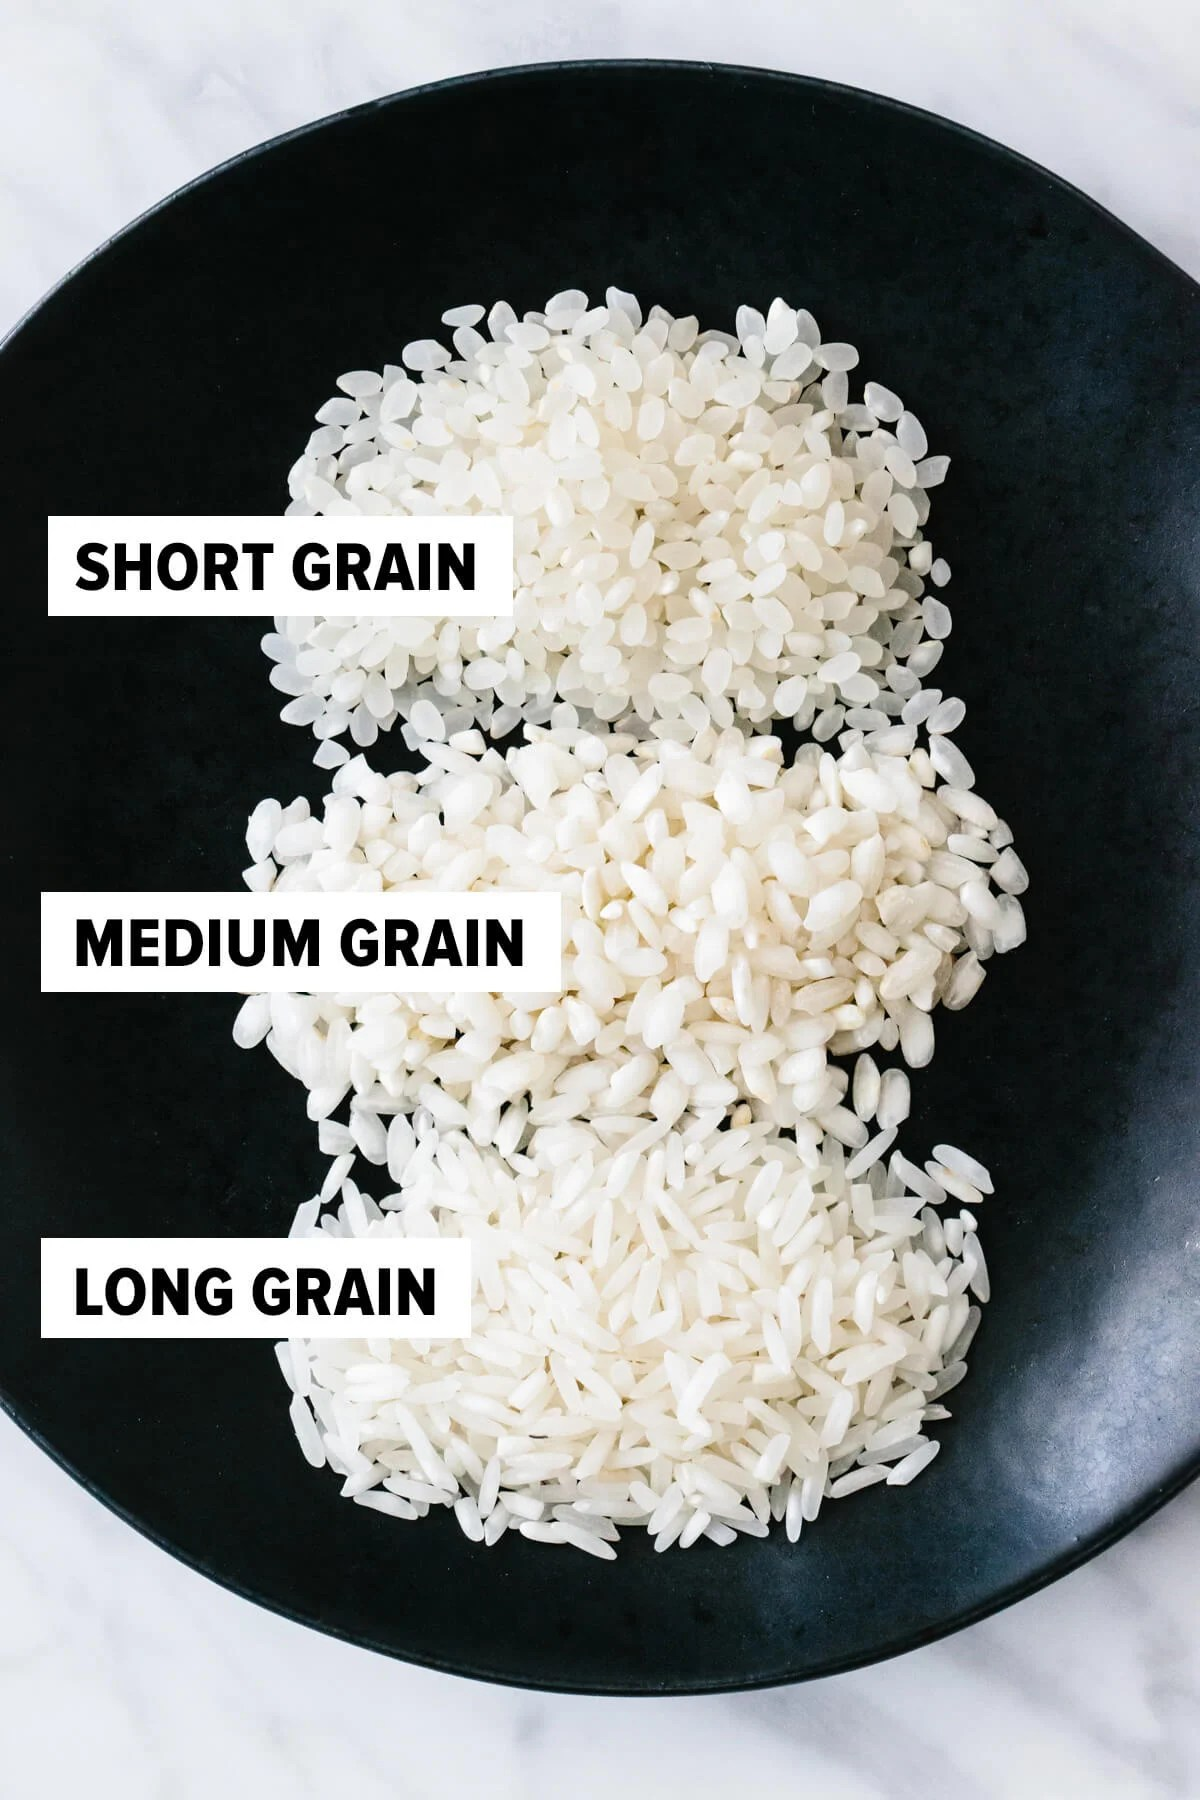 Short grain, medium grain and long grain rice on a plate.